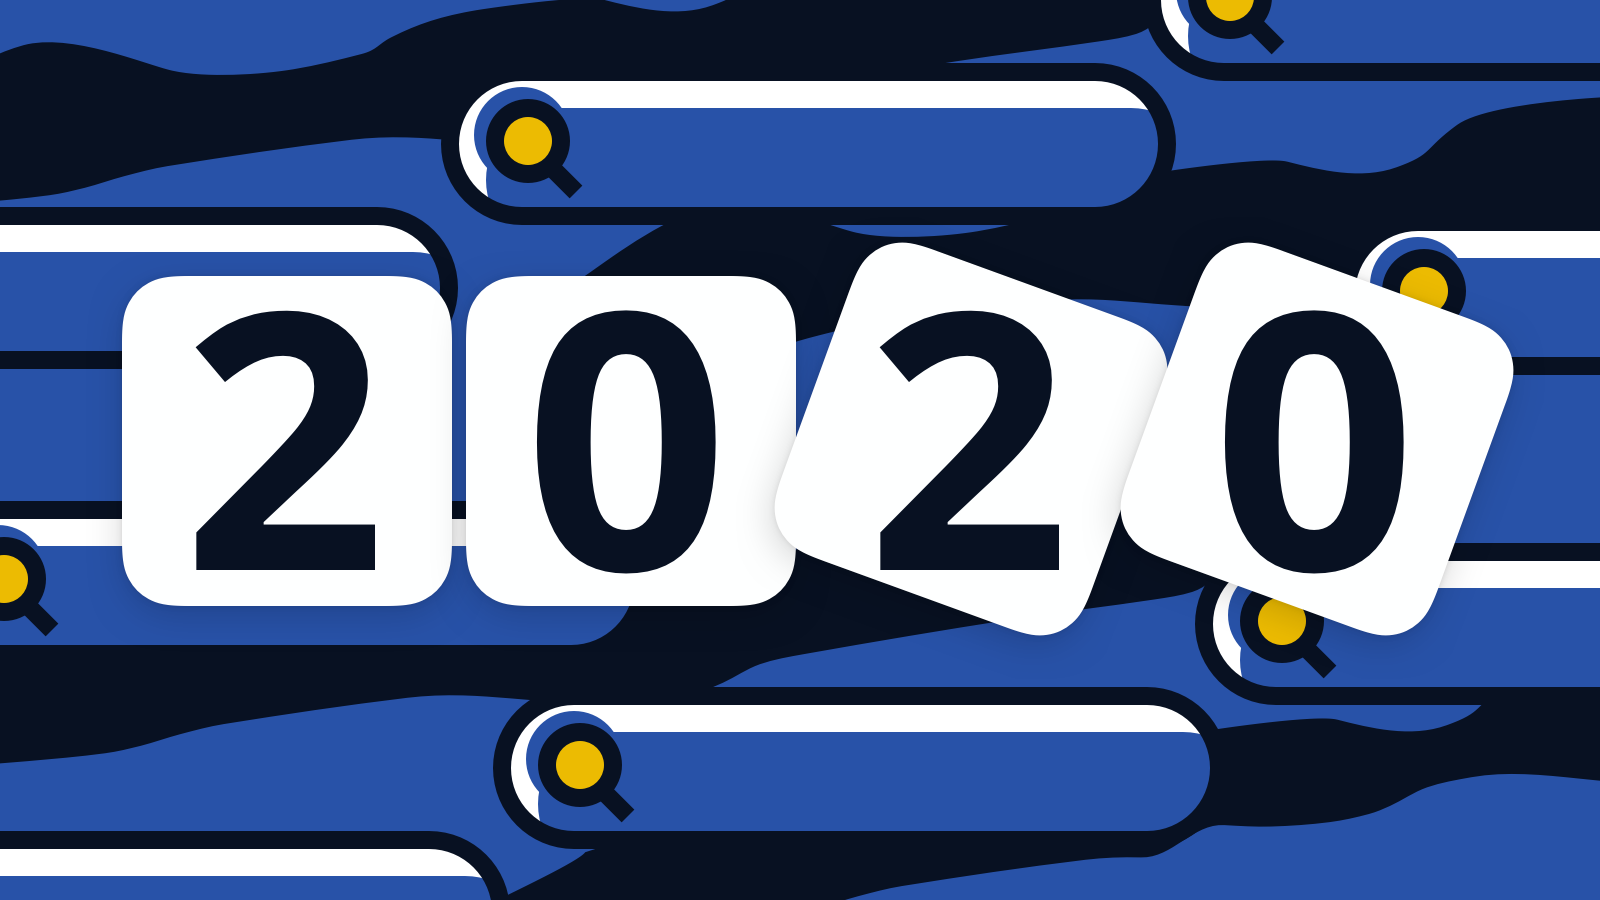 5 App Store Optimization Trends In 2020 You Shouldn't Ignore